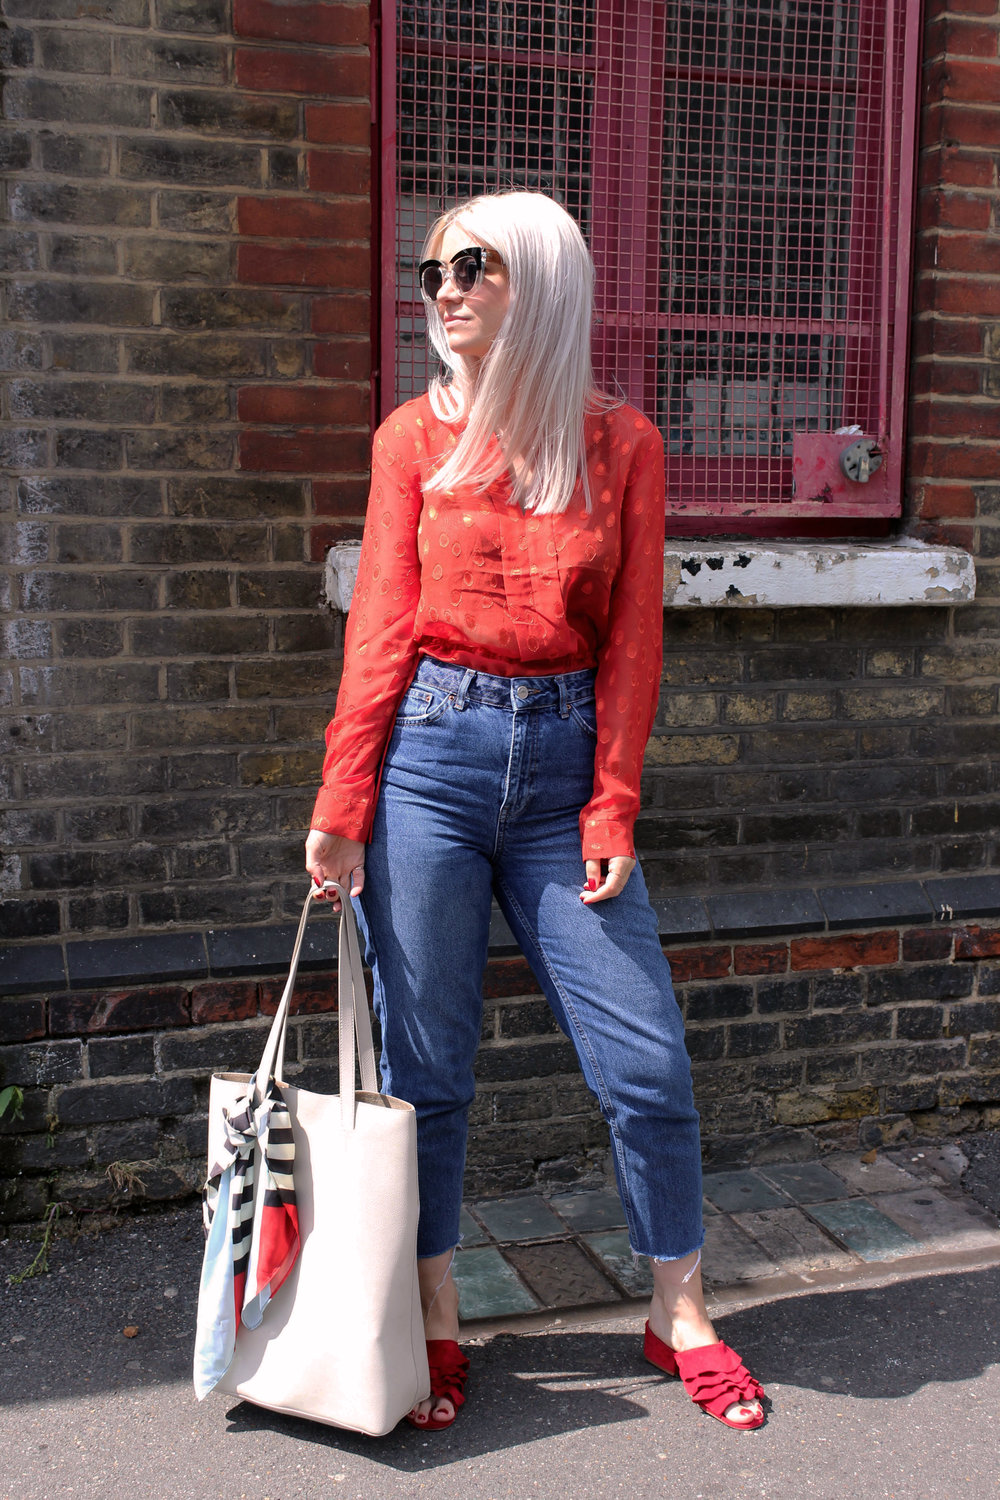 red sheer top, topshop denim jeans, red mules, ruffles, northern magpie, joey taylor 2